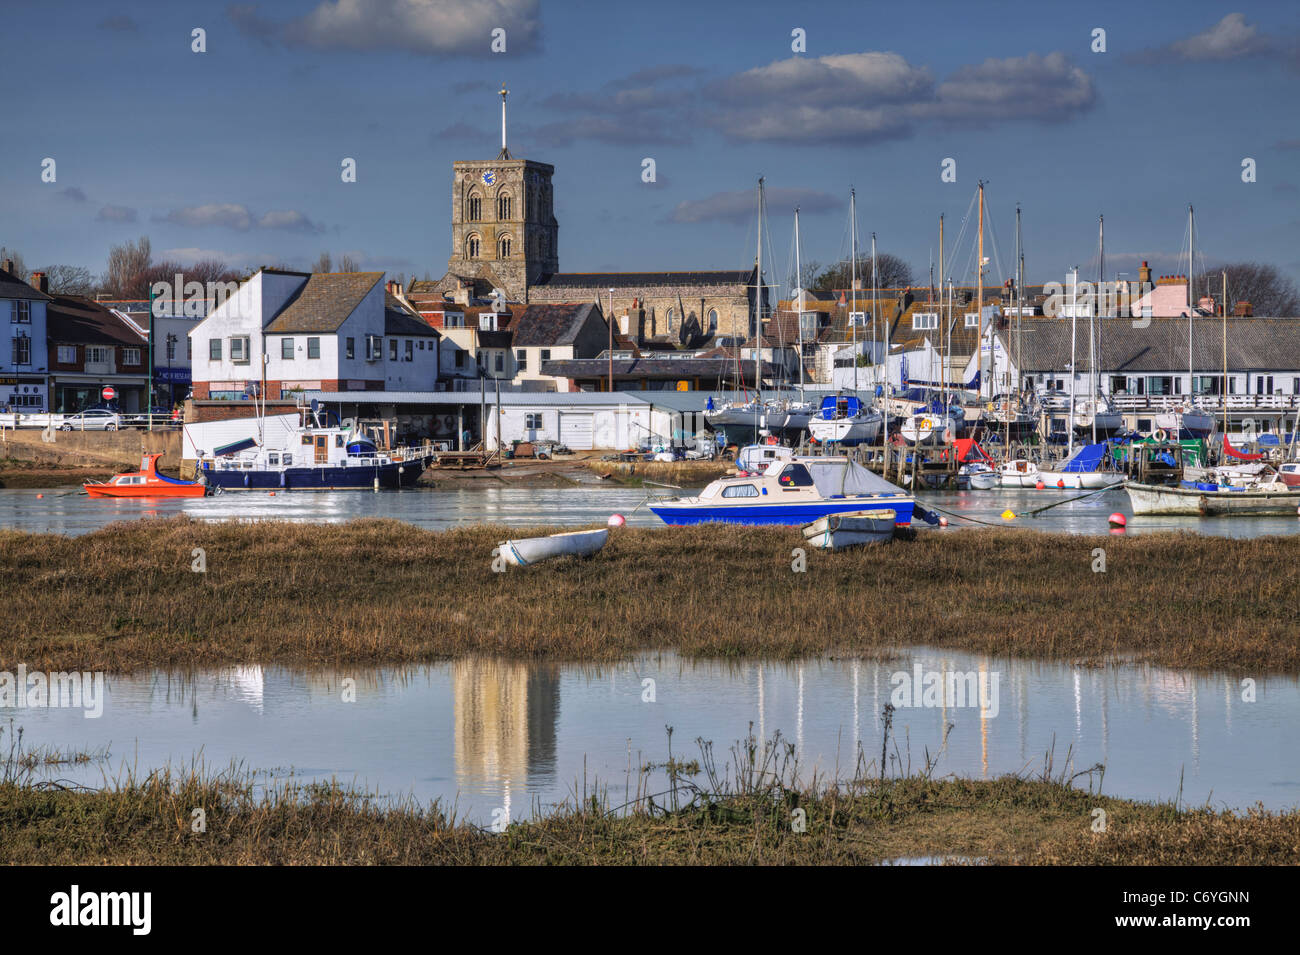 View of River Adur, Church of St Mary de haura and Shoreham town, West Sussex Stock Photo